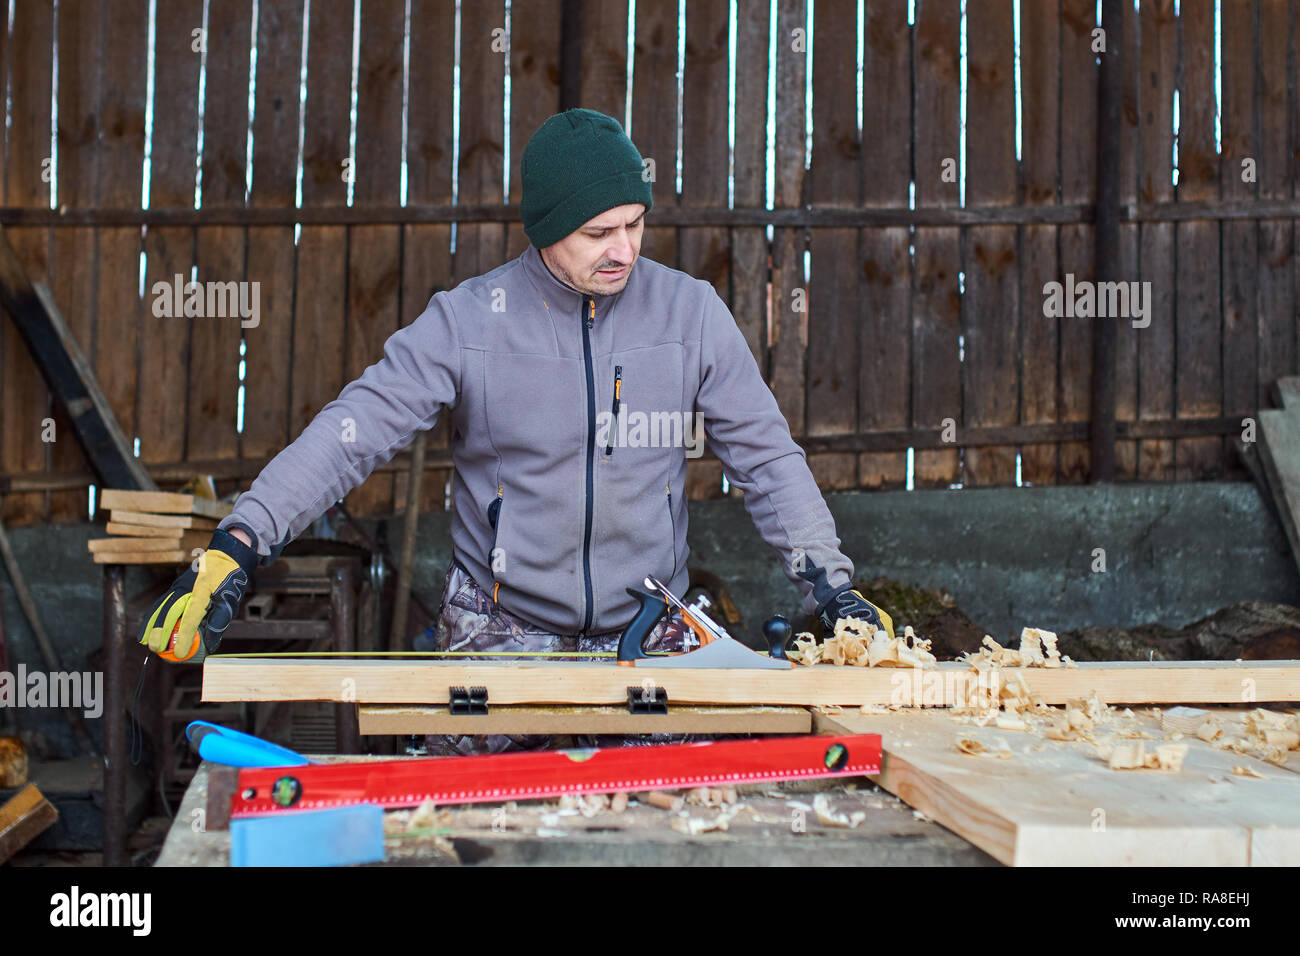 Woodworker measuing and planing his project in the workshop - Stock Image